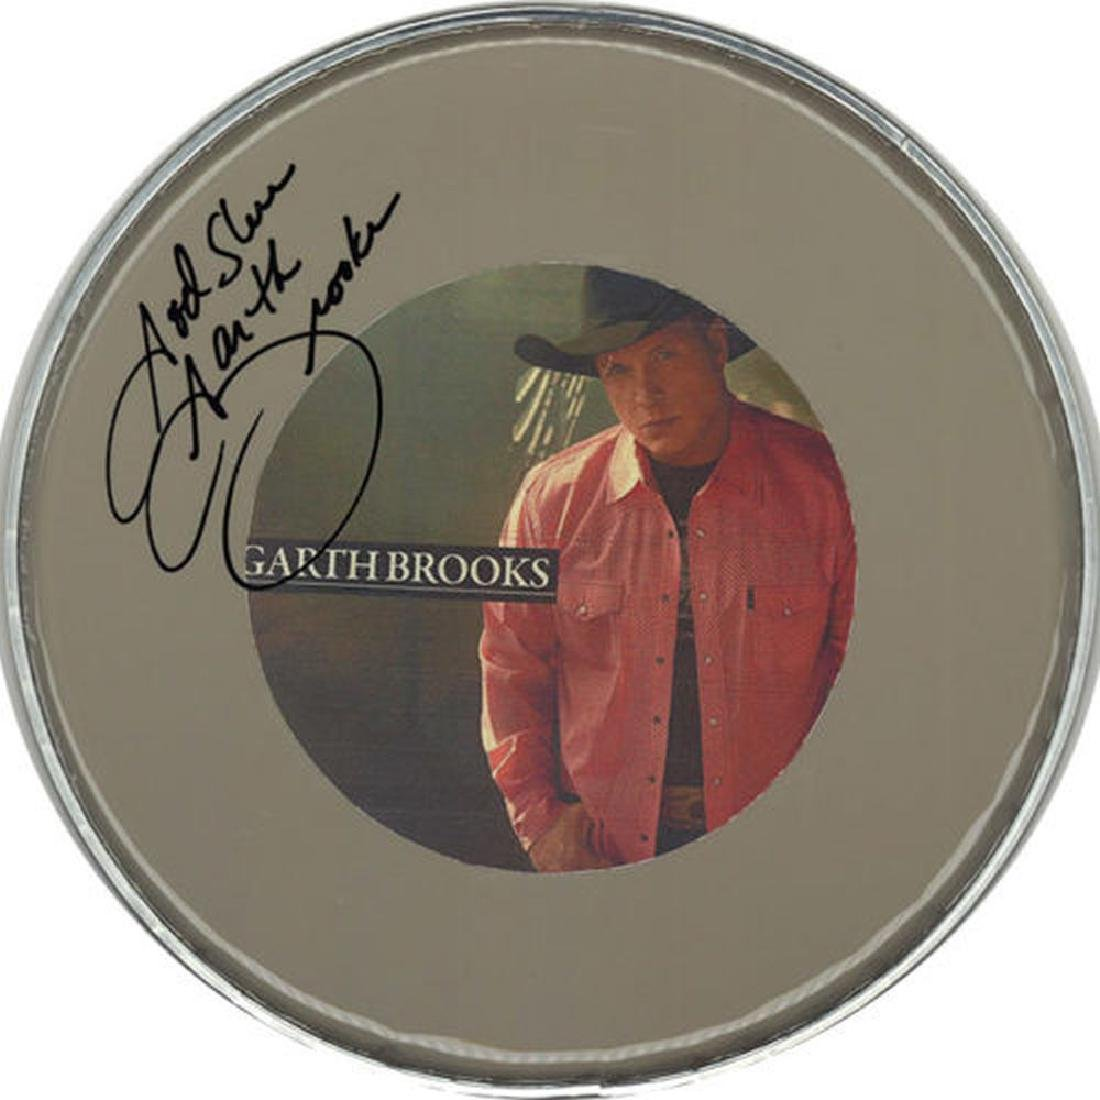 Garth Brooks Signed Drum Head